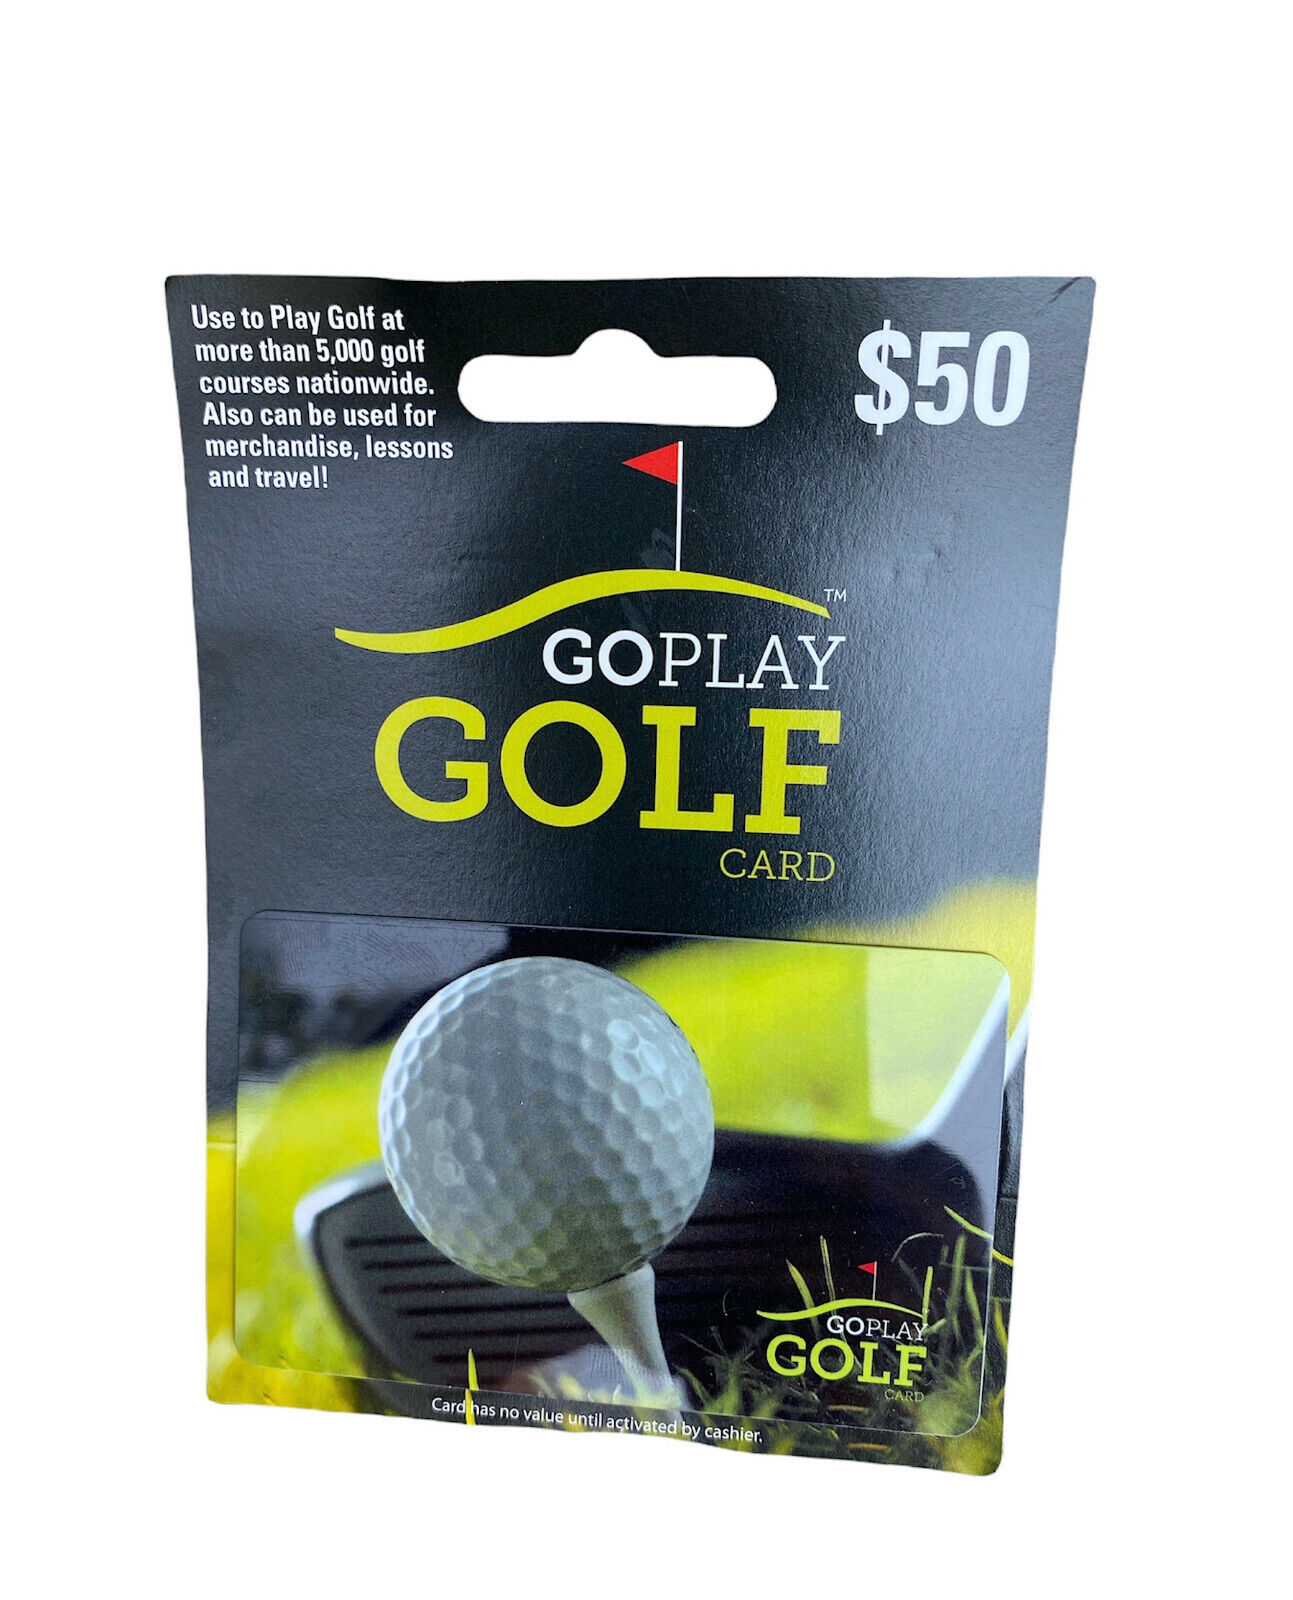 Go Play Golf Gift Card 50 Value New Unused - $40.00